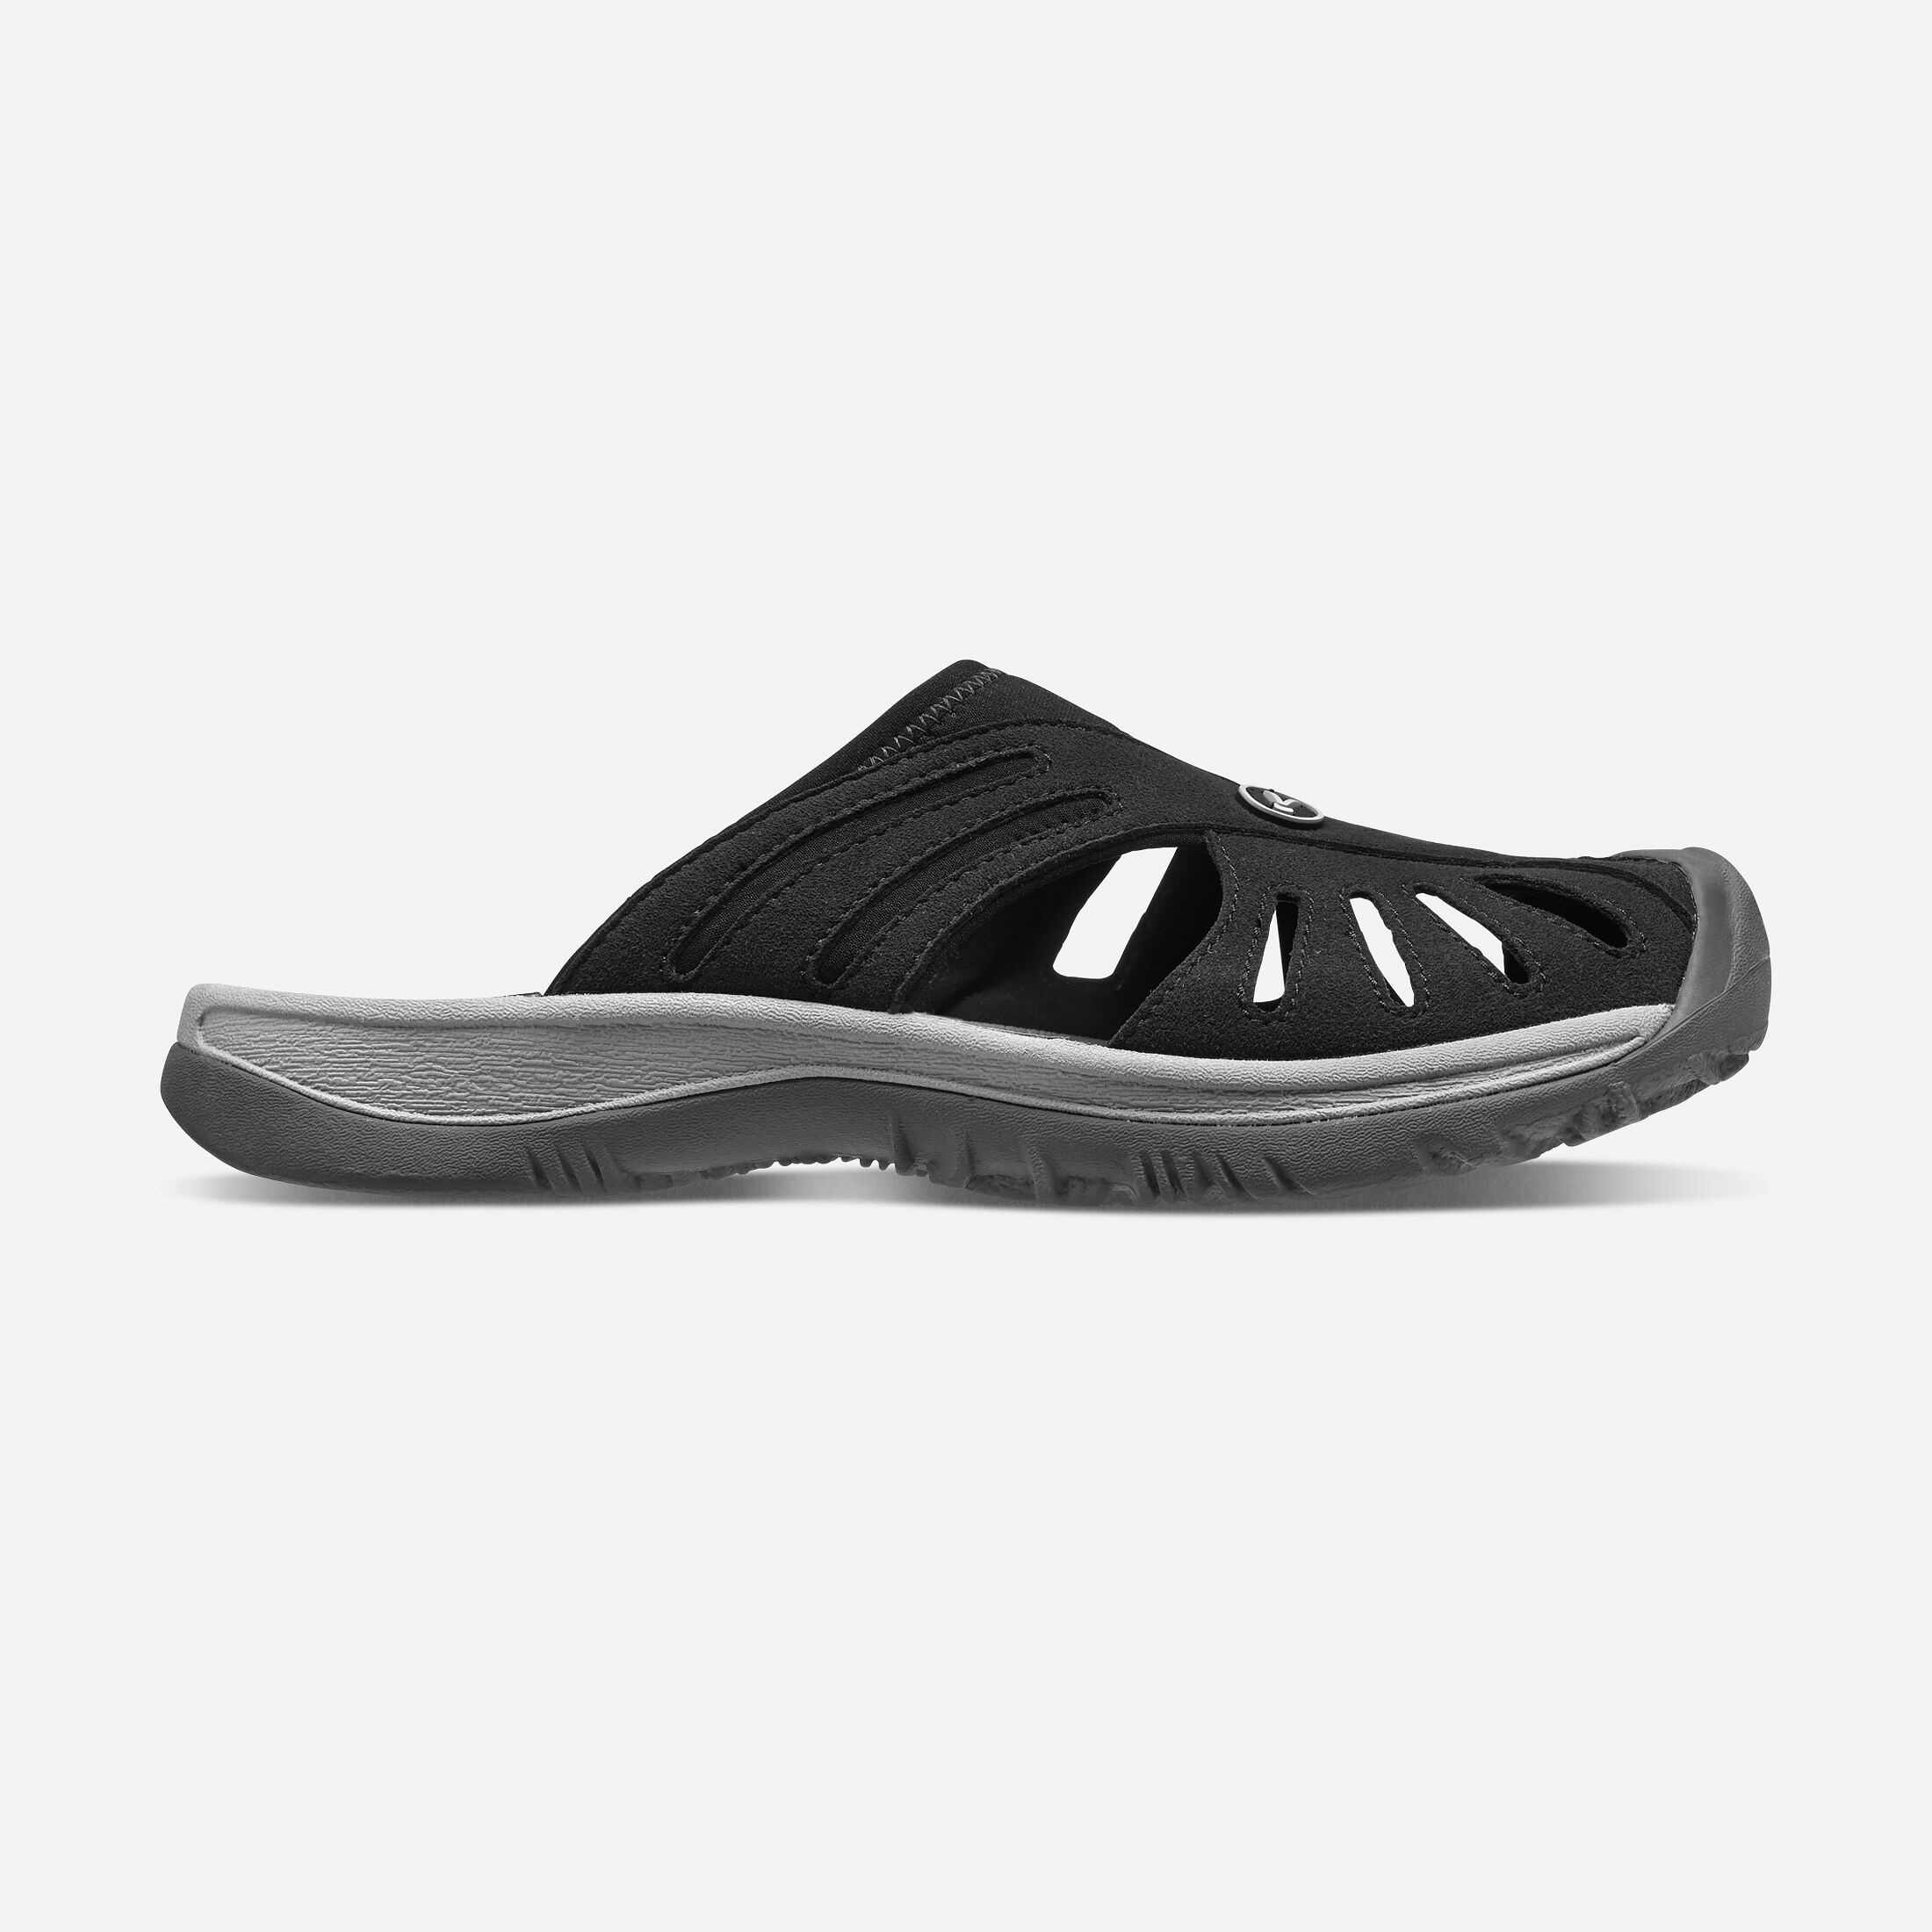 Keen Women Leather Slides — Size 7.5 Comfort Shoes Clothing, Shoes & Accessories